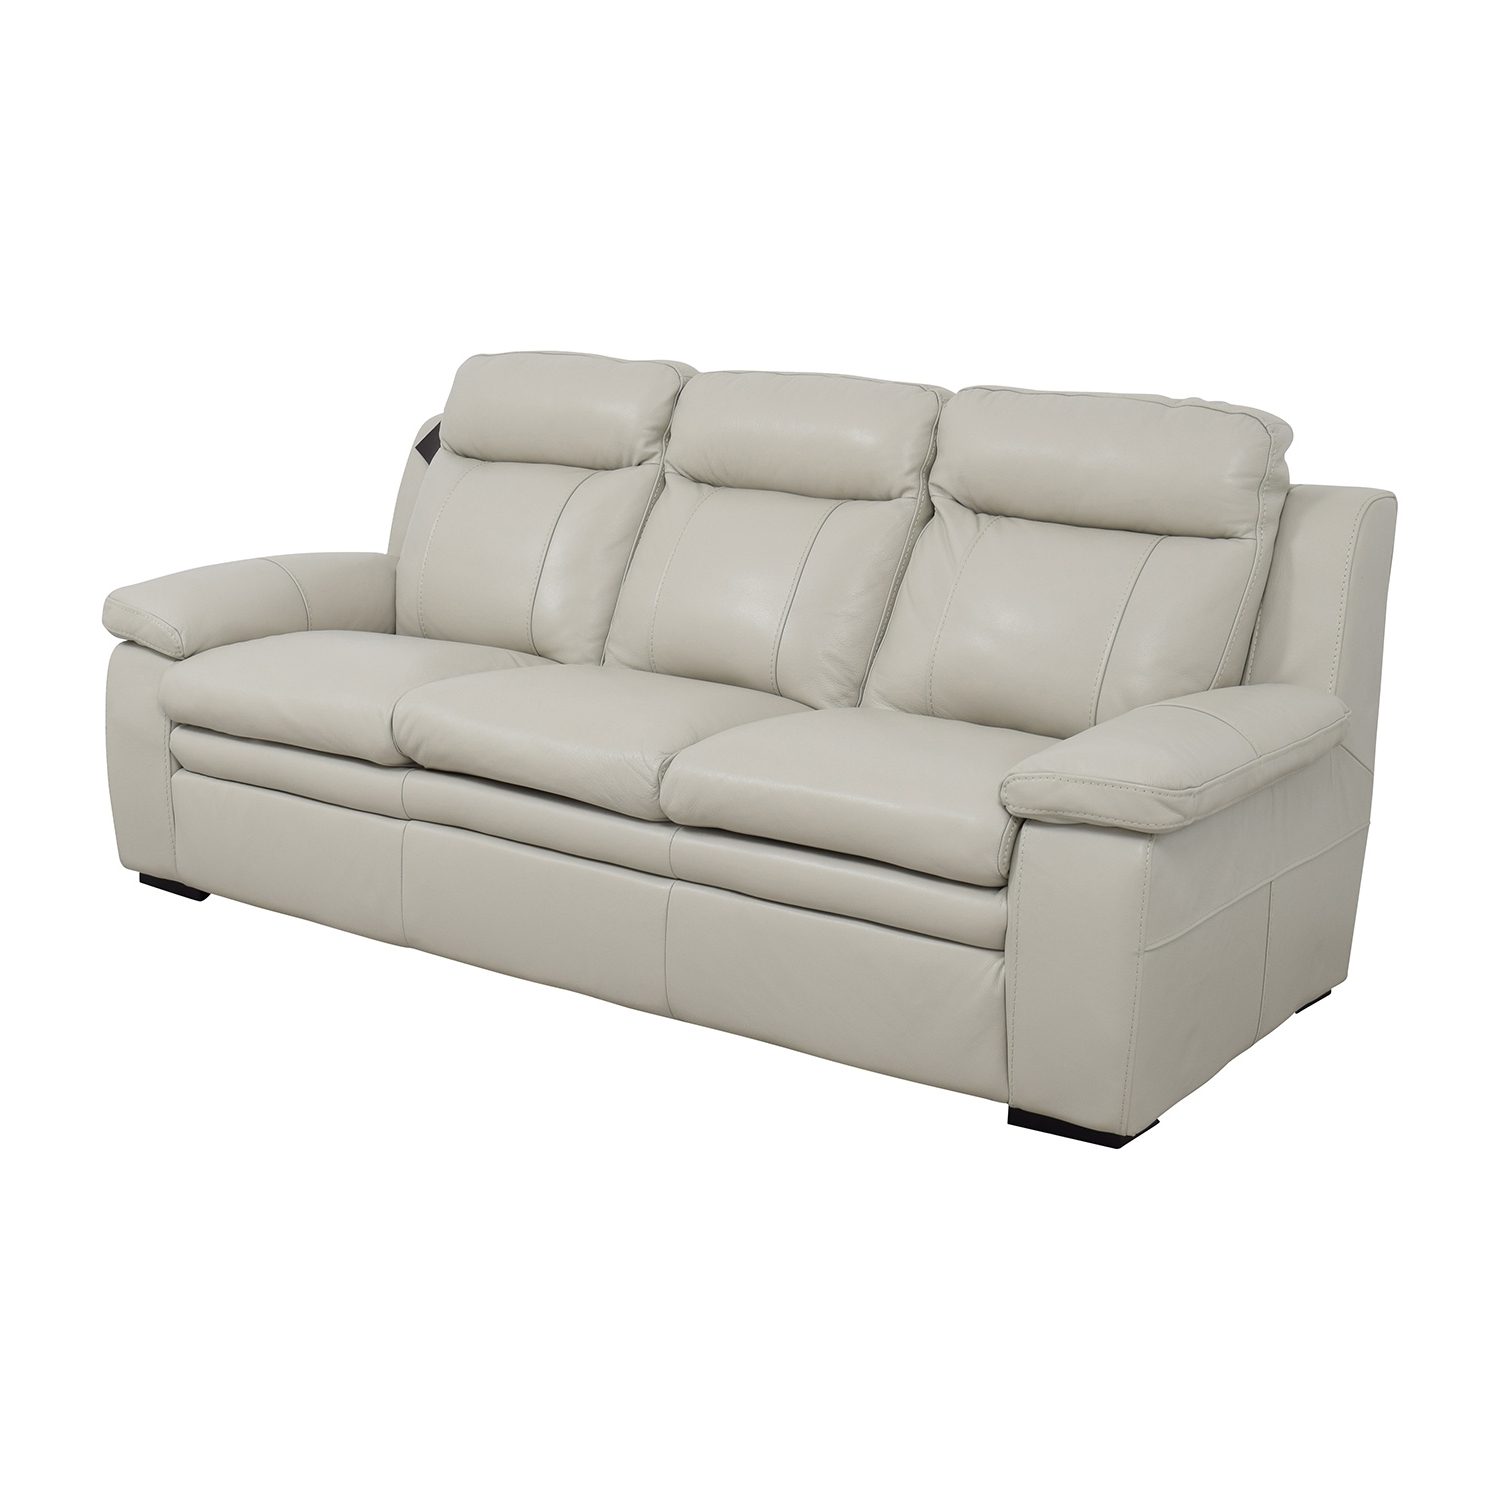 [%67% Off – Macy's Macy's Zane White Leather Sofa / Sofas Within Preferred Off White Leather Sofas|off White Leather Sofas Throughout Well Known 67% Off – Macy's Macy's Zane White Leather Sofa / Sofas|popular Off White Leather Sofas Inside 67% Off – Macy's Macy's Zane White Leather Sofa / Sofas|most Popular 67% Off – Macy's Macy's Zane White Leather Sofa / Sofas Within Off White Leather Sofas%] (View 20 of 20)